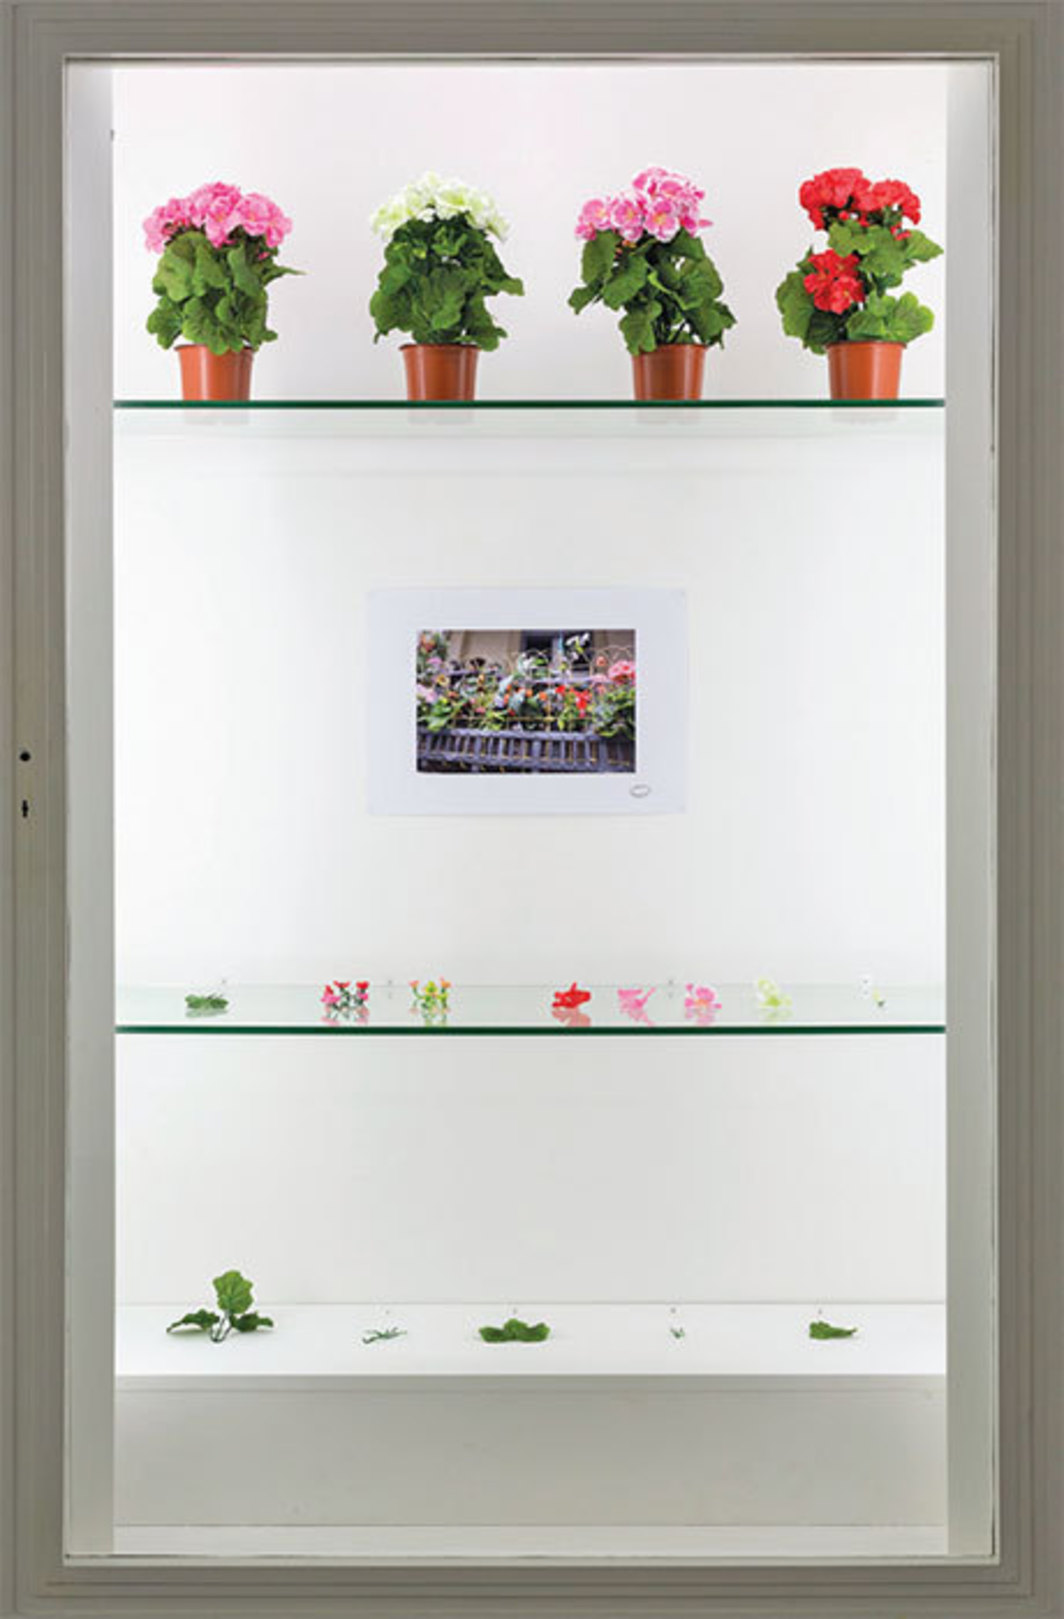 Alberto Baraya, Expedition Berlín, Herbarium of Artificial Plants (detail), 2013–, mixed media, dimensions variable.